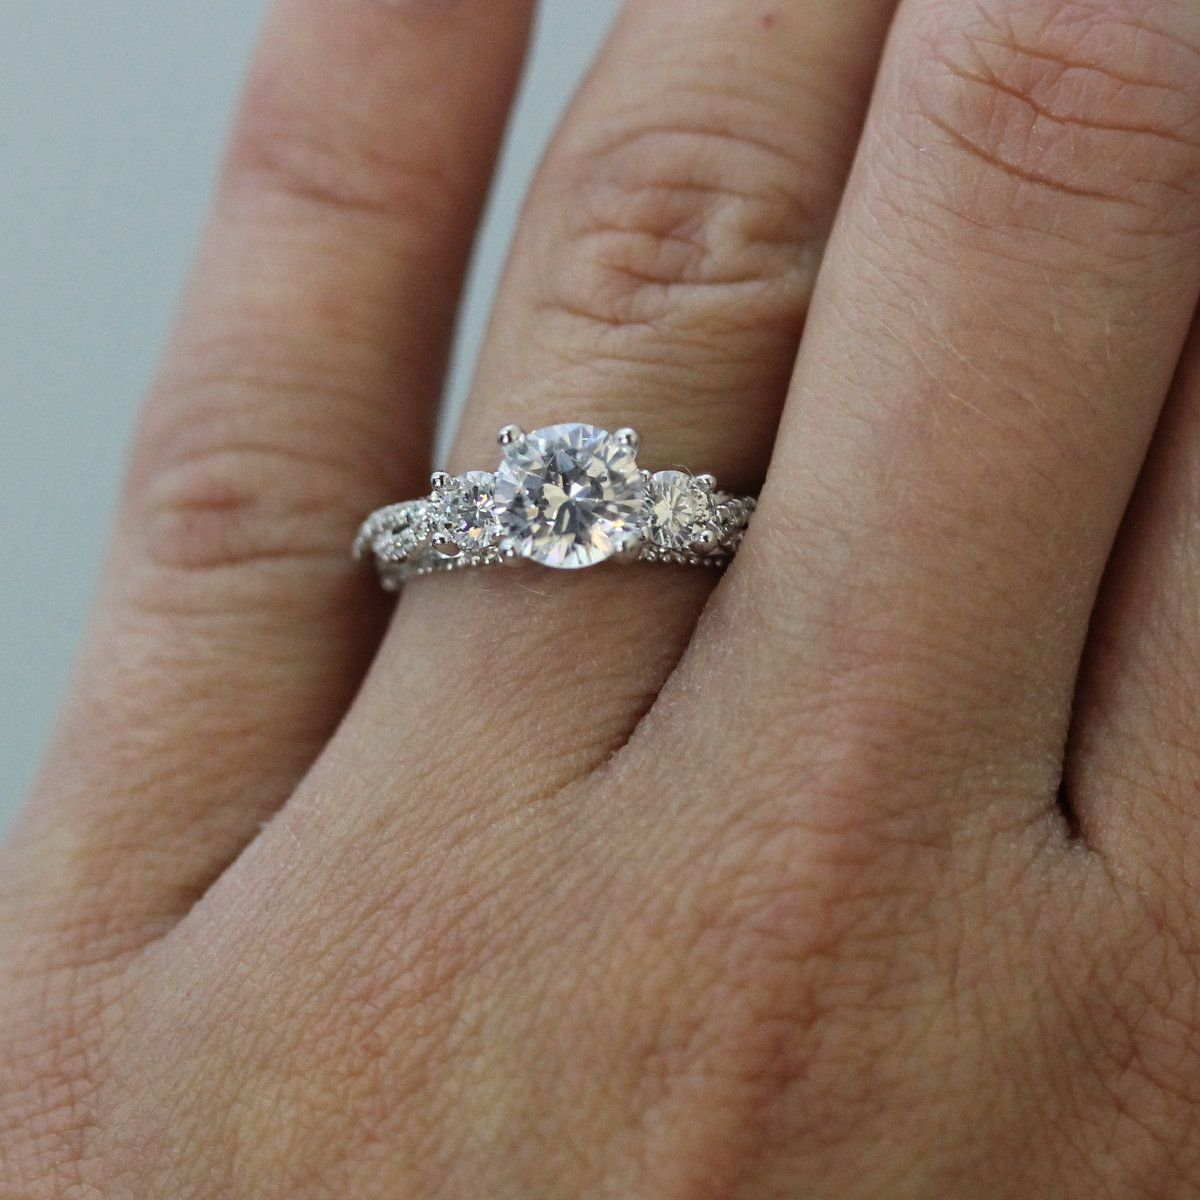 This Is The Most Popular Engagement Ring Style Of 2016 According